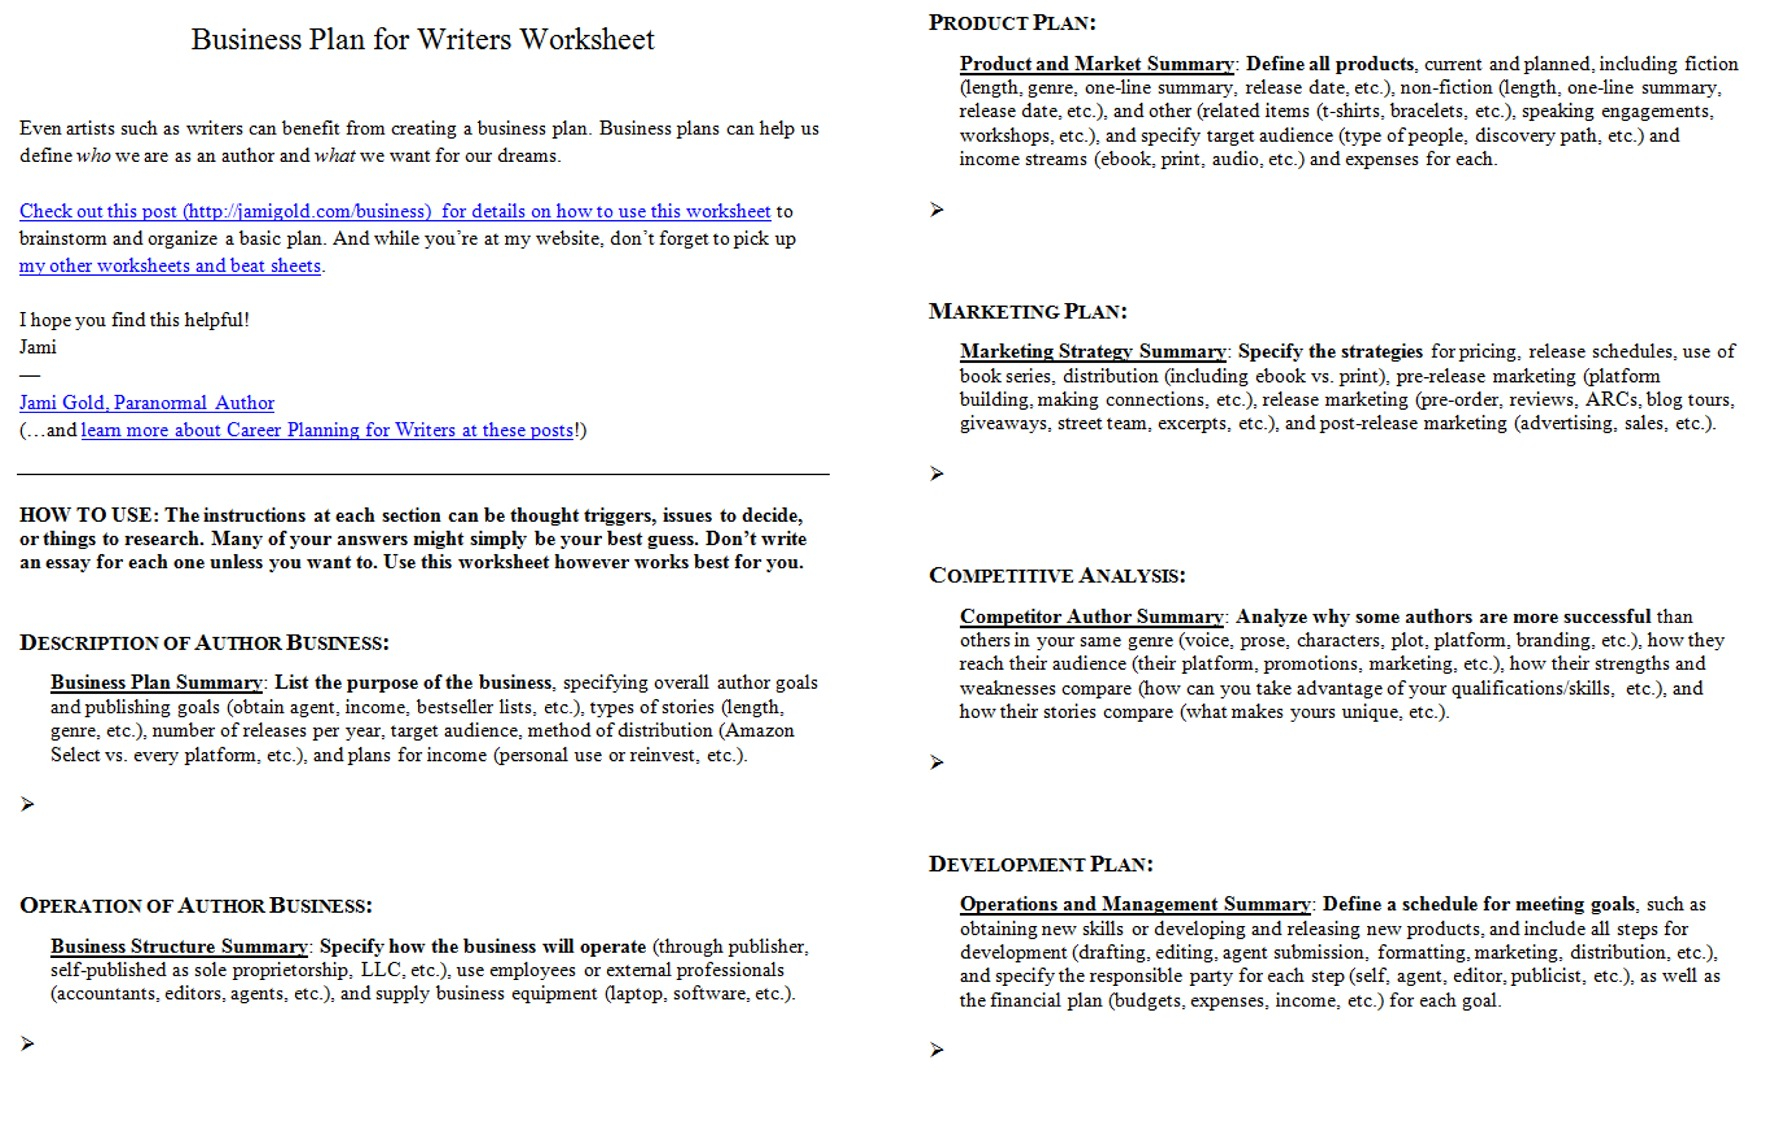 Aldiablosus  Fascinating Worksheets For Writers  Jami Gold Paranormal Author With Fascinating Screen Shot Of Both Pages Of The Business Plan For Writers Worksheet With Cool Varying Sentence Beginnings Worksheet Also Multi Syllable Words Worksheets In Addition Citation Worksheet And Polyatomic Compounds Names And Formulas Worksheet As Well As Ionic Compound Worksheet  Answers Additionally Skills Worksheet Cell Transport From Jamigoldcom With Aldiablosus  Fascinating Worksheets For Writers  Jami Gold Paranormal Author With Cool Screen Shot Of Both Pages Of The Business Plan For Writers Worksheet And Fascinating Varying Sentence Beginnings Worksheet Also Multi Syllable Words Worksheets In Addition Citation Worksheet From Jamigoldcom